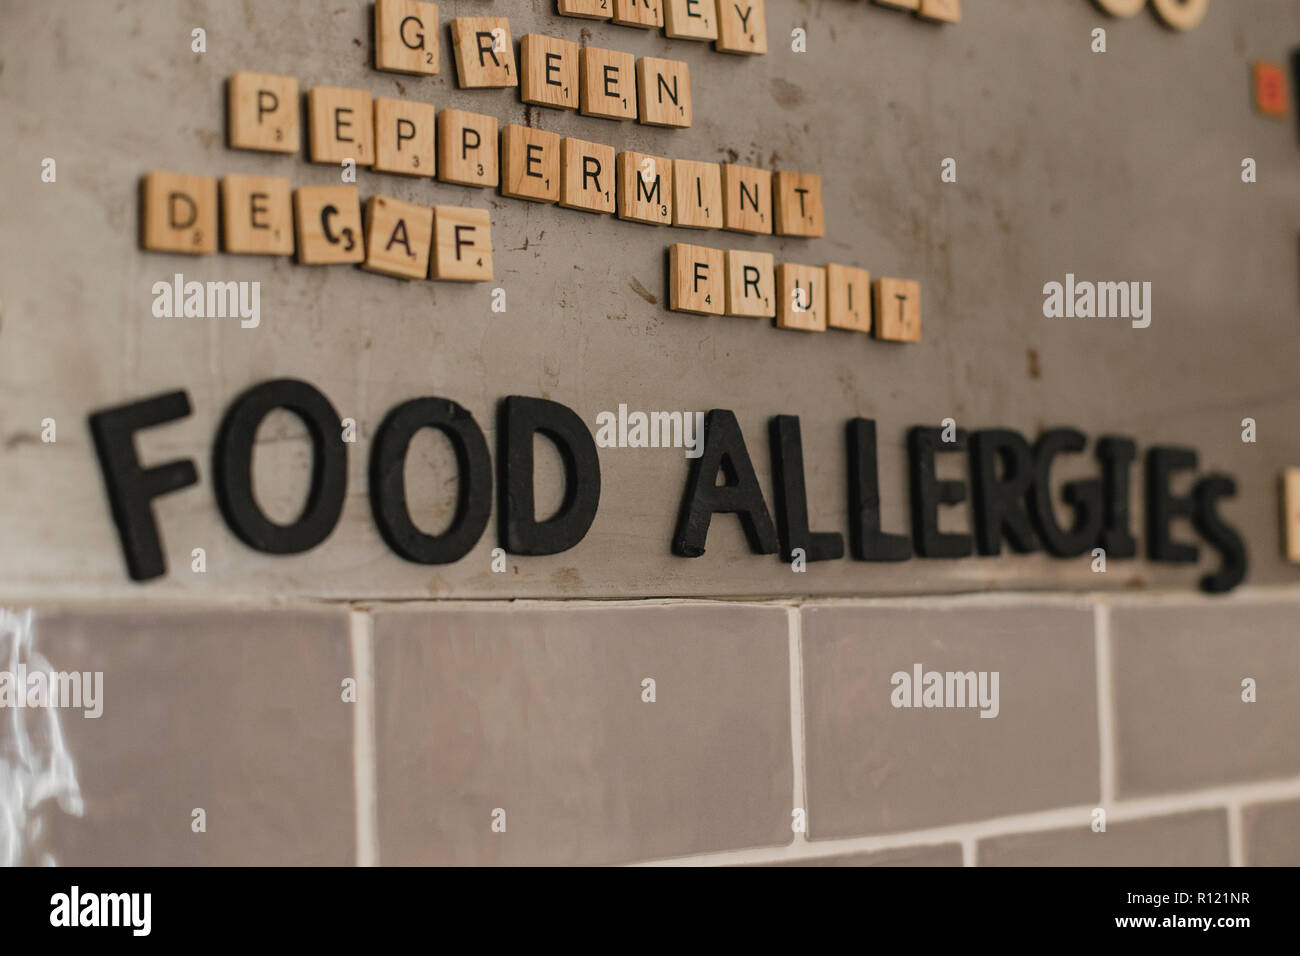 Low Angle View Of Food Allergies Menu On The Wall In A Cafe They Have Used Little Tile Letters To Show The Words Stock Photo Alamy